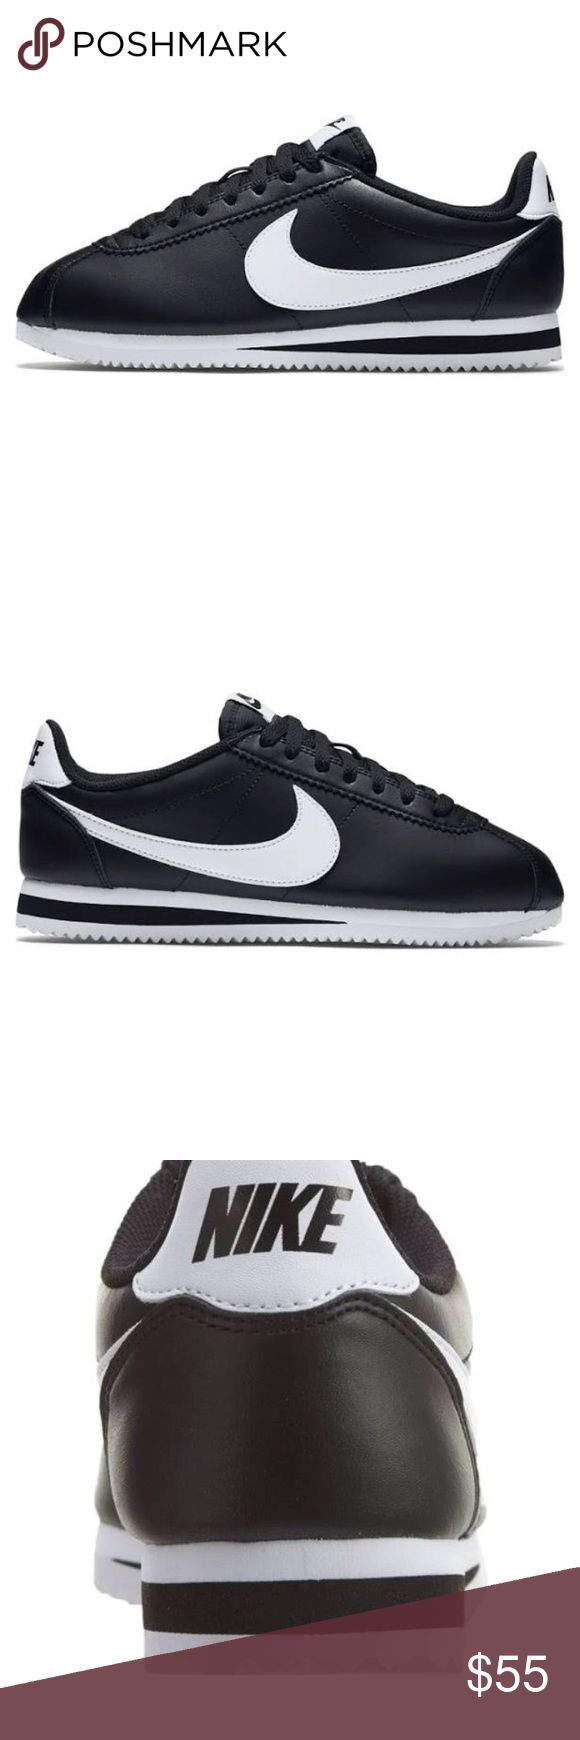 Women's Nike Cortez BRAND NEW IN BOX Womens Nike Classic Cortez - Black/White/Black : Indulge in iconic Nike sneakers with the Classic Cortez. Full-grain leather upper. Classic herringbone outsole for comfort and traction. *got these as a gift they are brand new in box and have never been worn! Nike Shoes Athletic Shoes